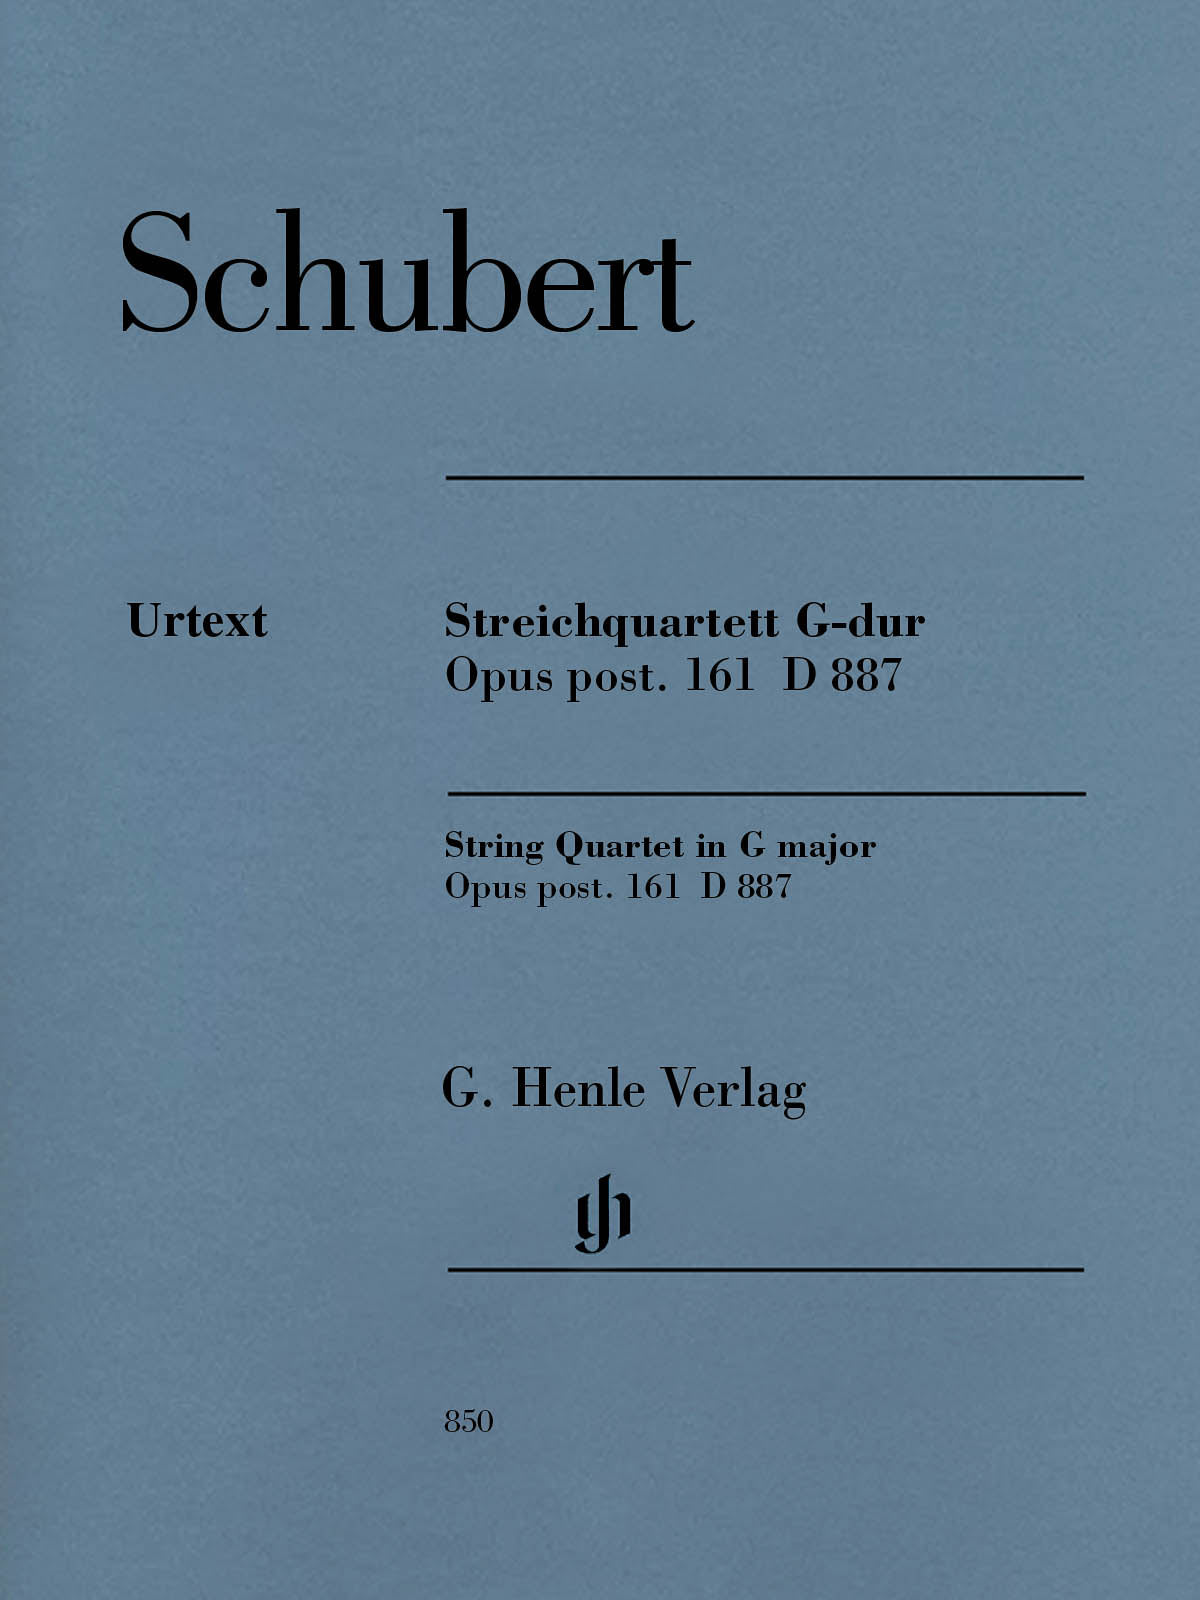 Schubert: String Quartet in G Major, Op. posth. 161, D 887